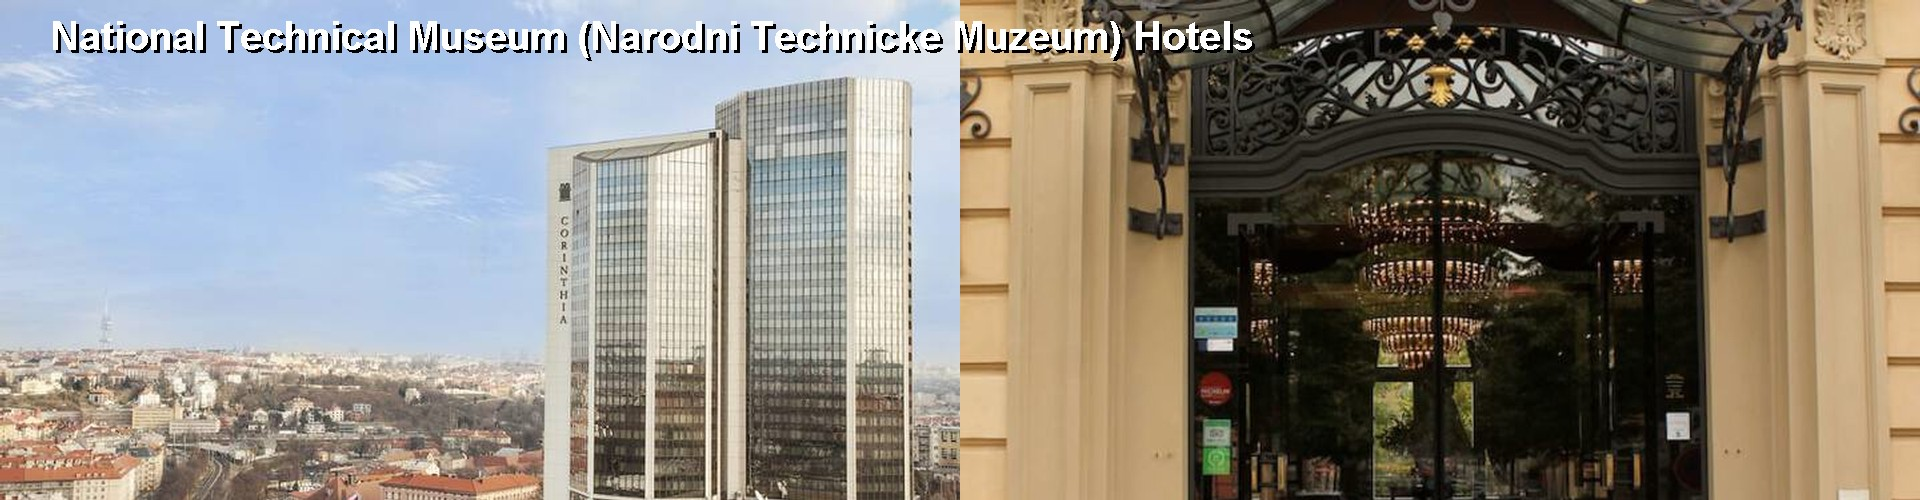 5 Best Hotels near National Technical Museum (Narodni Technicke Muzeum)